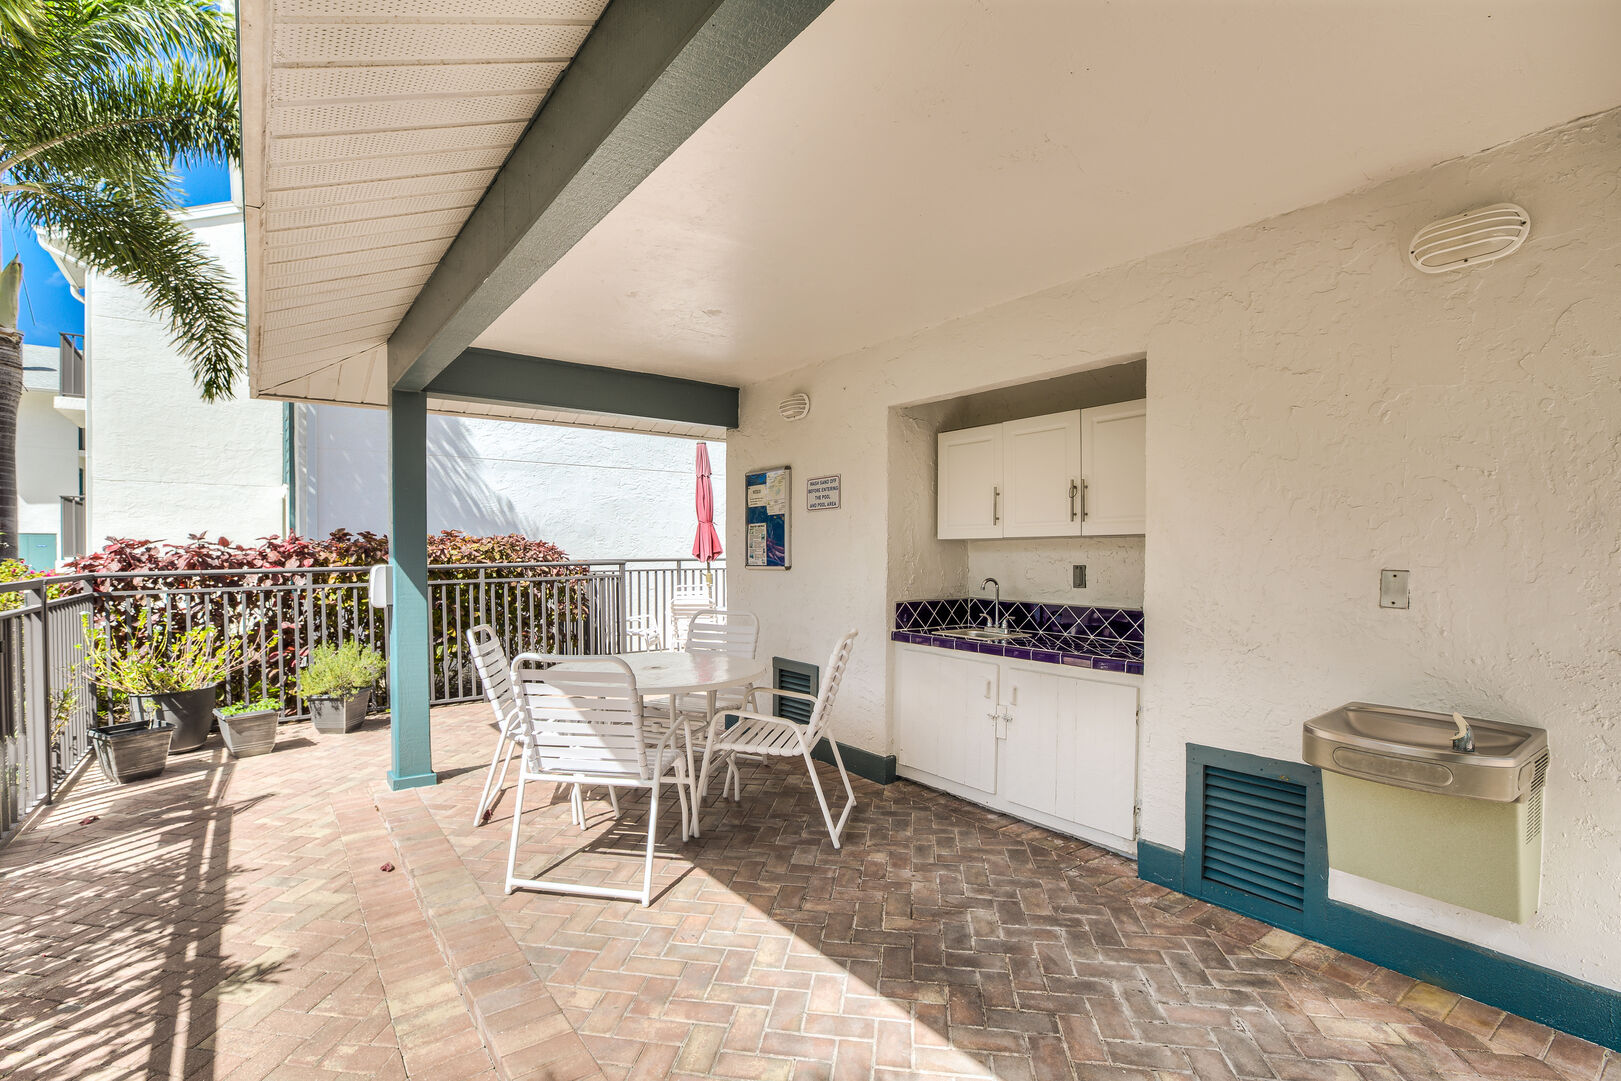 outside seating and small kitchen